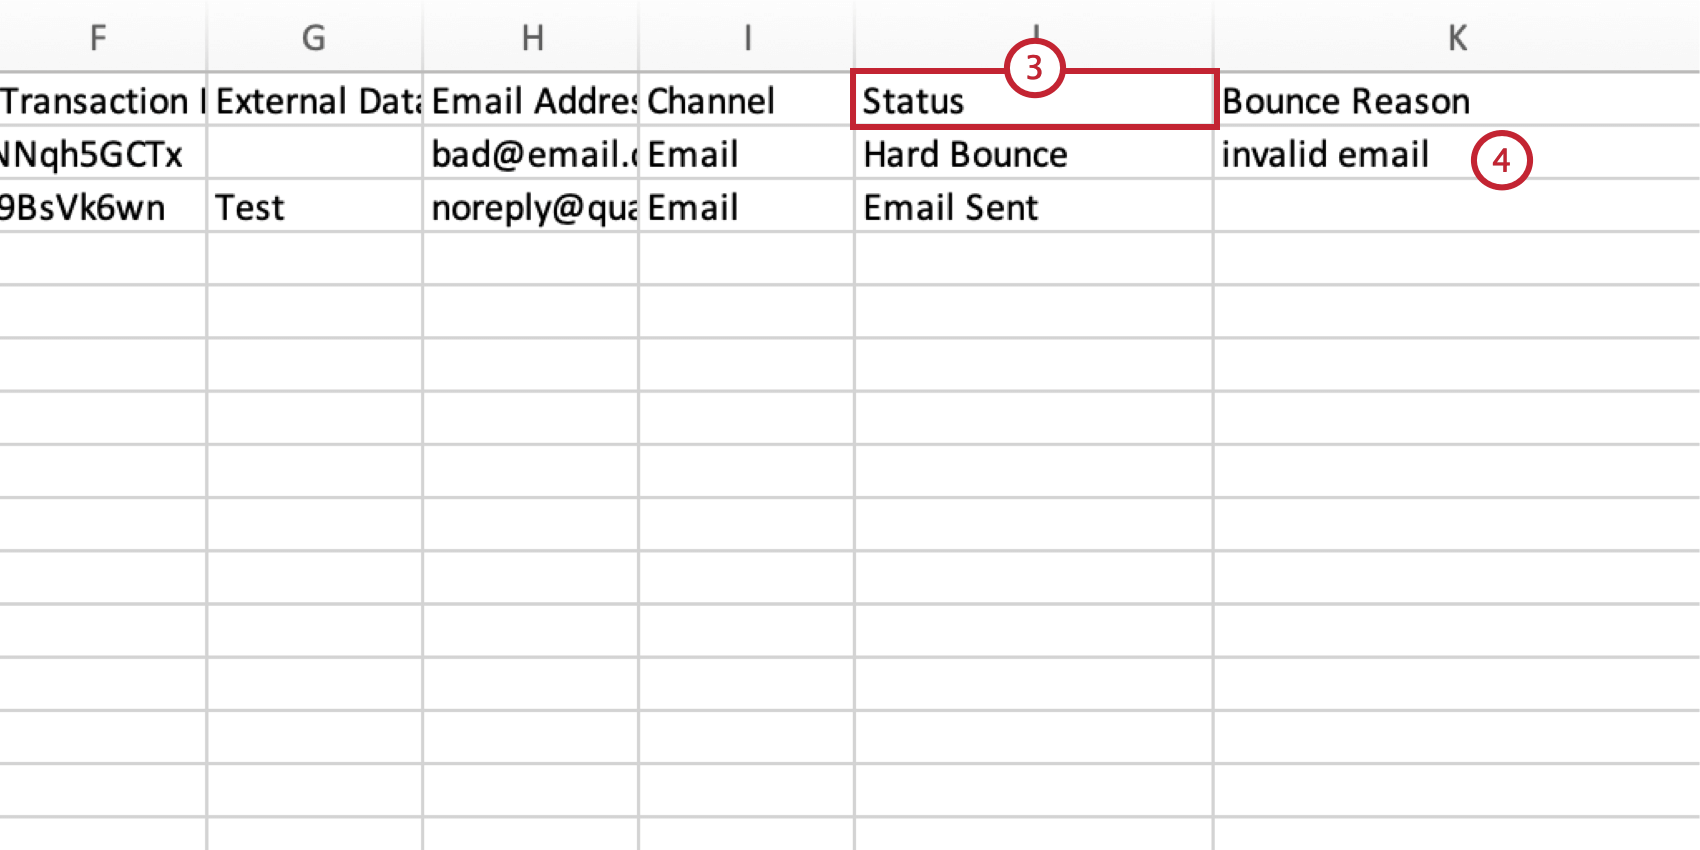 filtering the status column and looking at the bounce reason in the Bounce Reason column